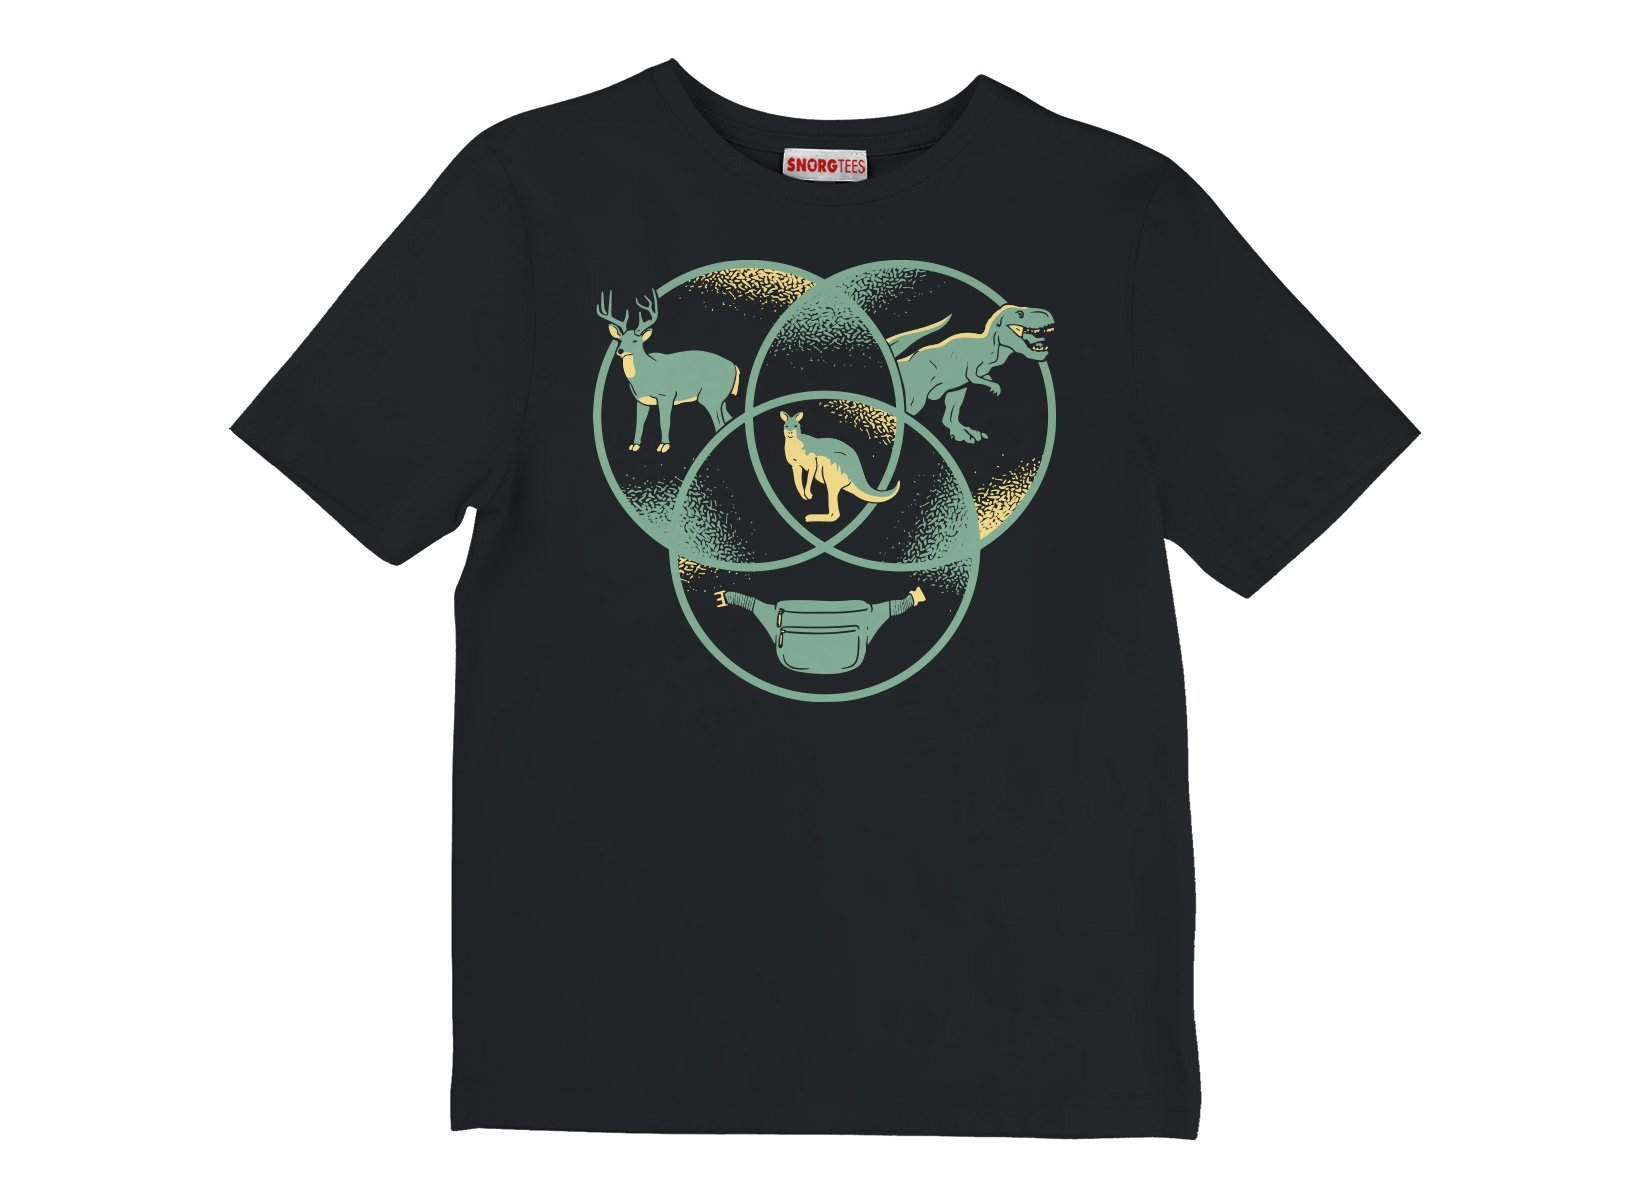 Kangaroo Venn Diagram on Kids T-Shirt